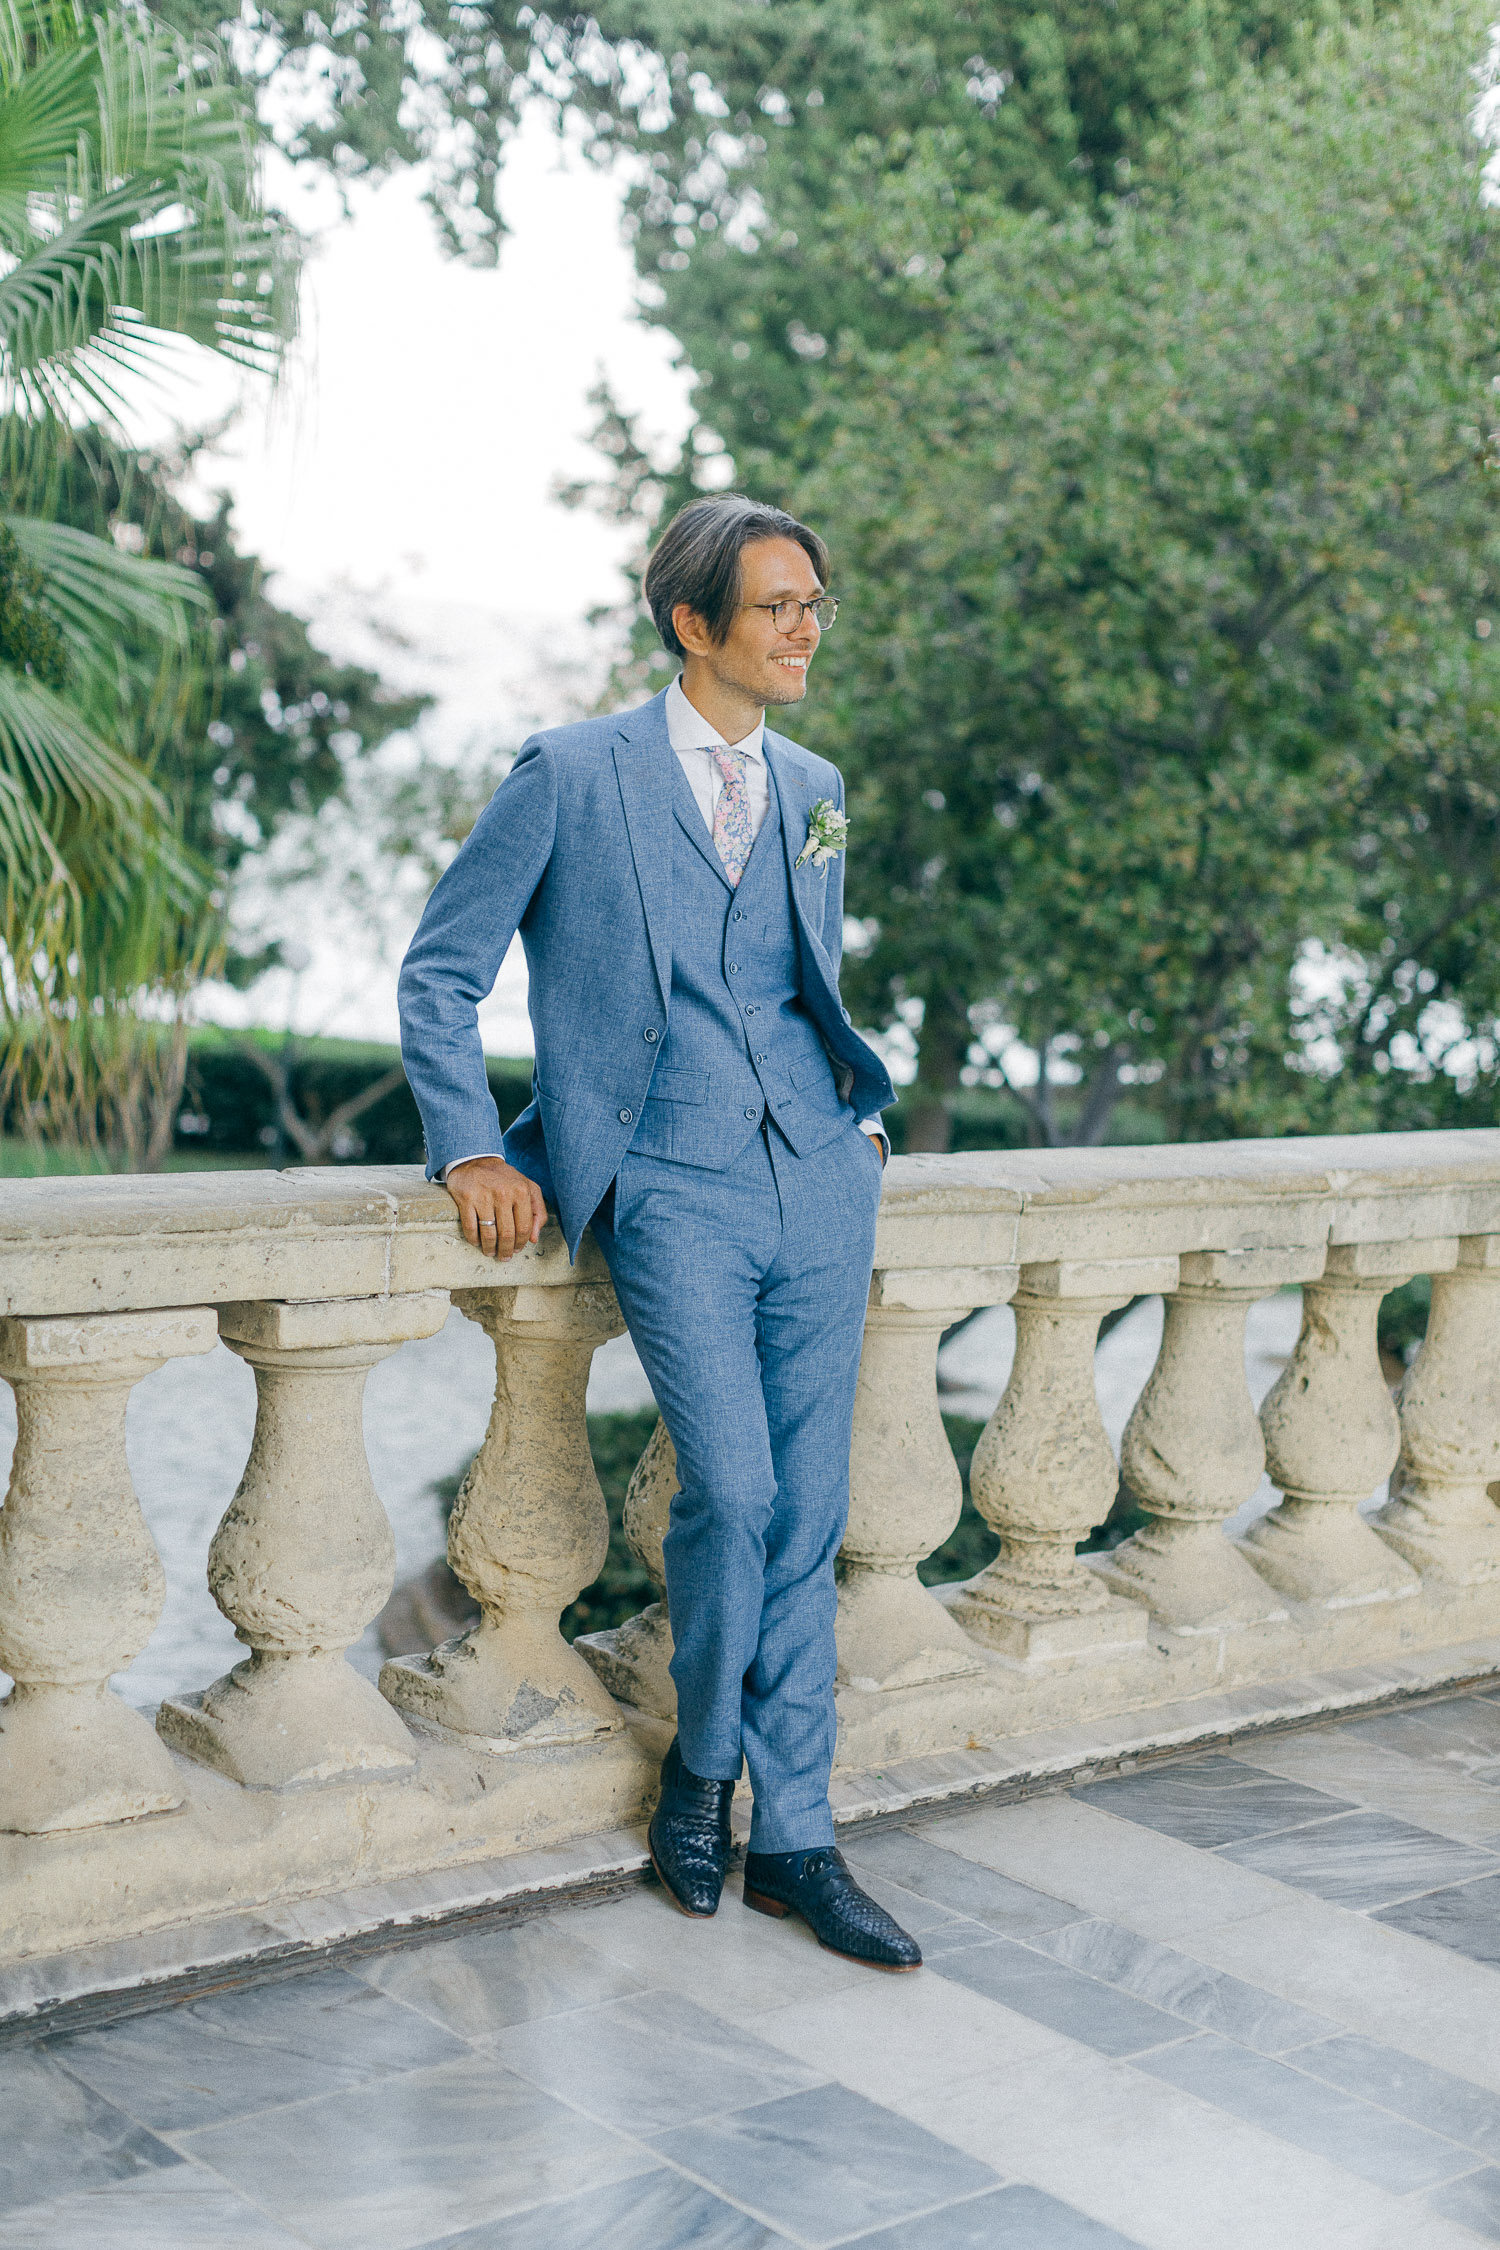 Groom poses out of St Michael Palace in Corfu while an Old World micro wedding in Corfu Island